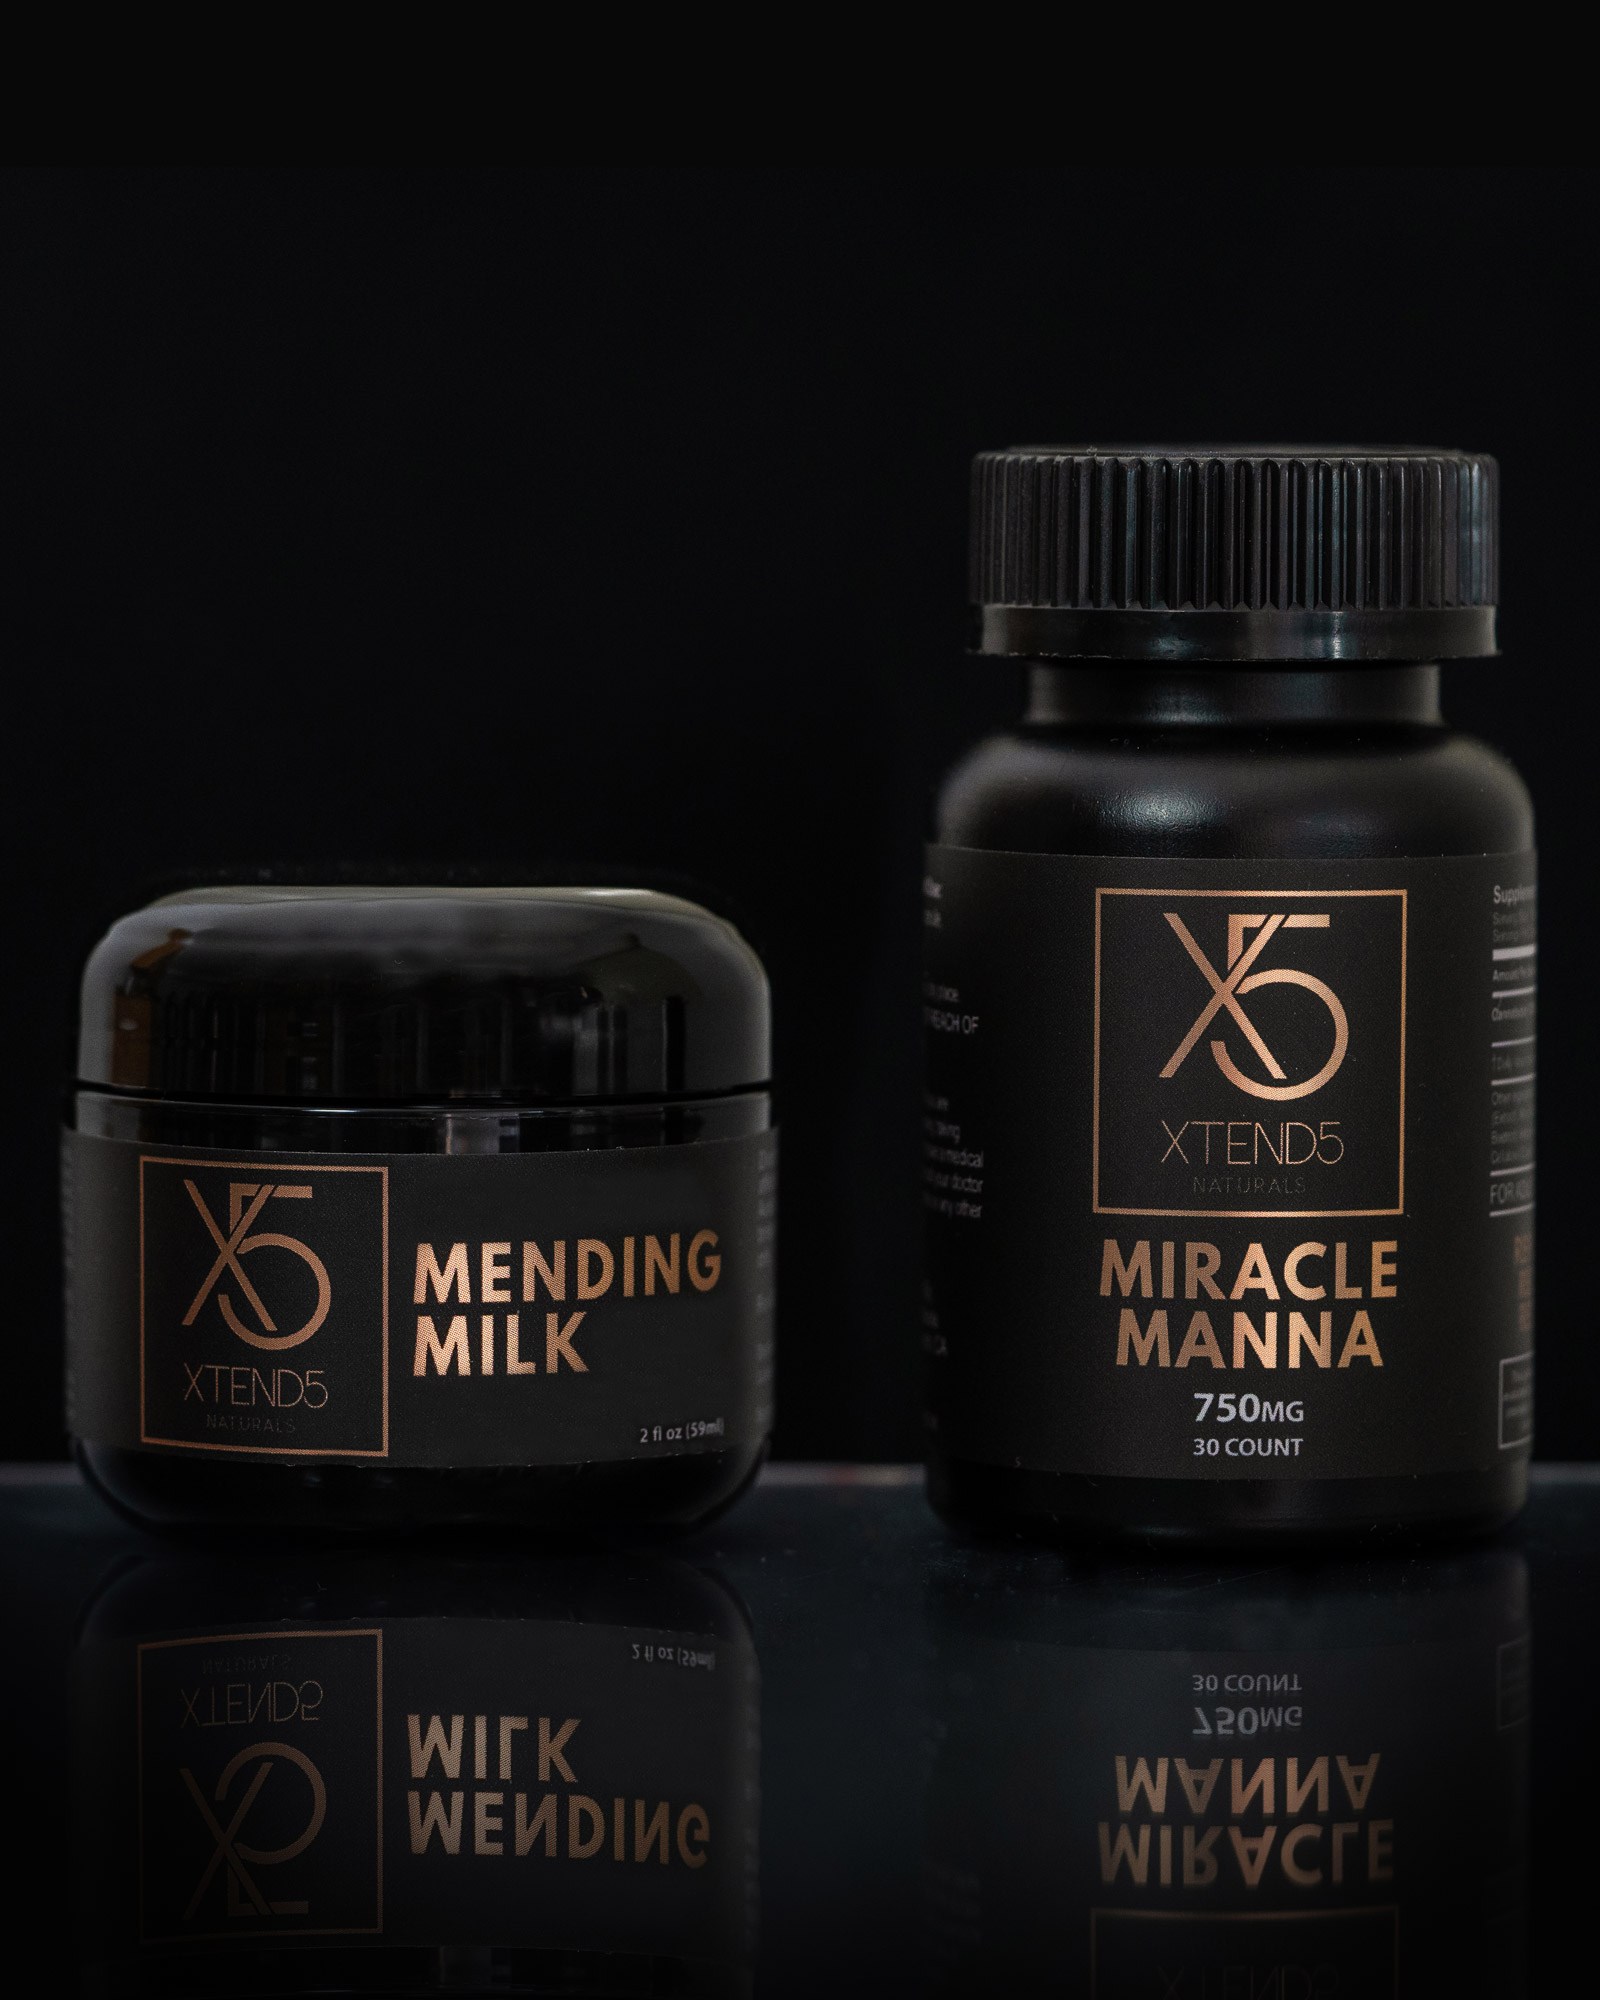 xtend5 mending milk 500mg miracle manna 750mg capsules - The Recovery Pack